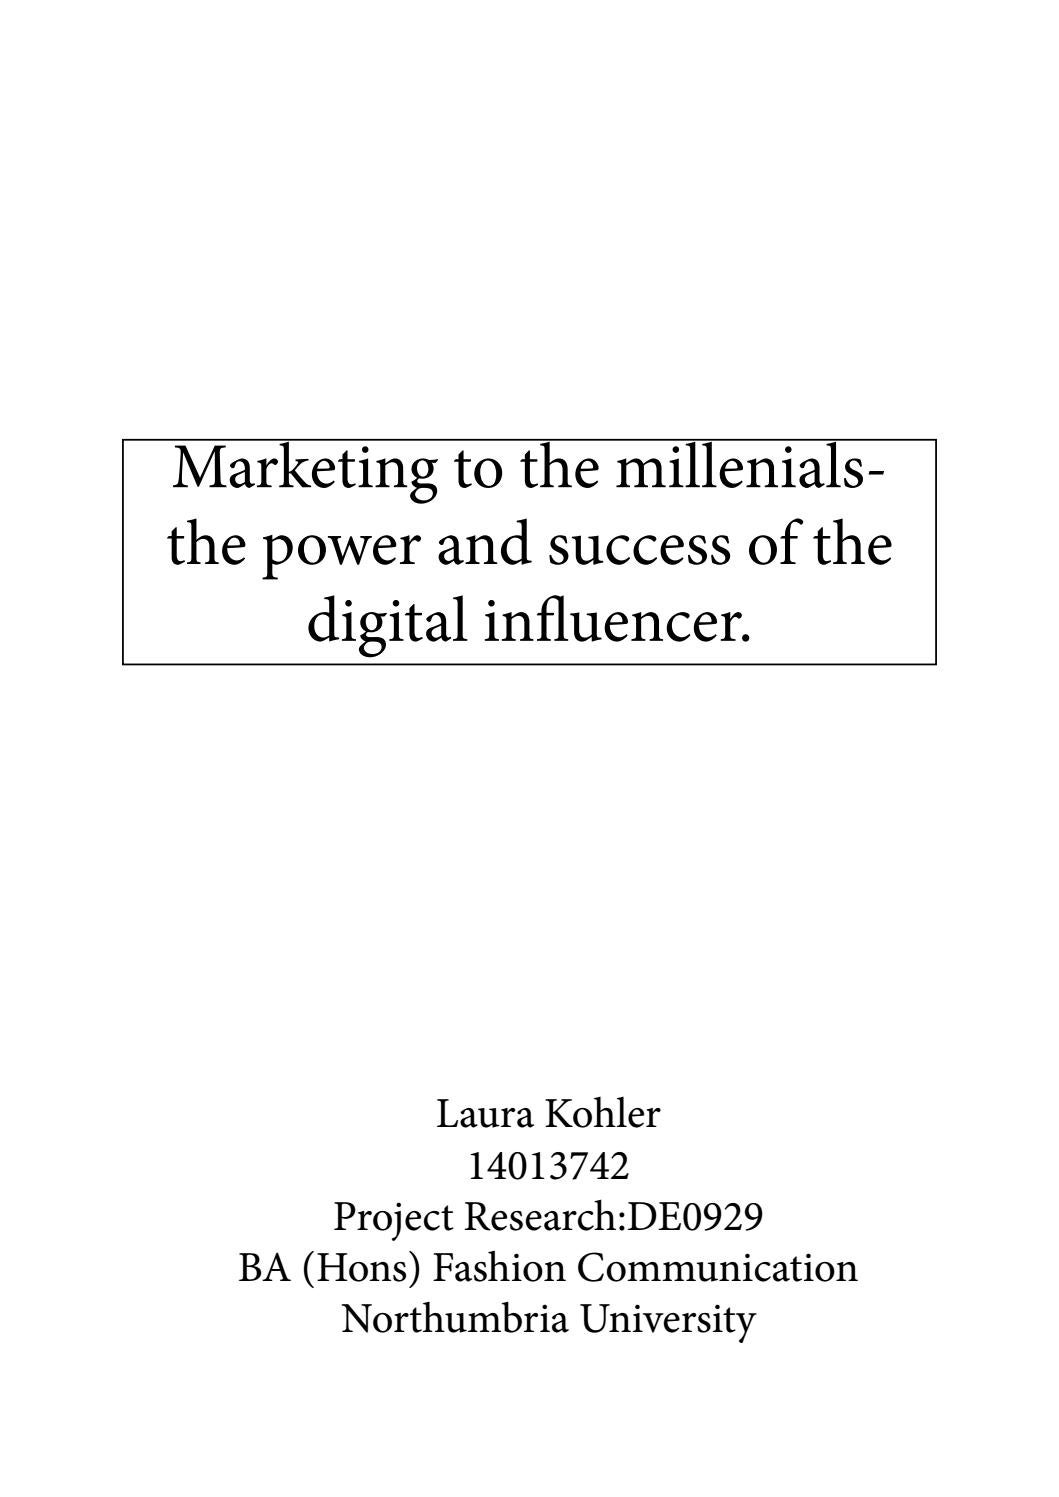 Marketing To The Millennial Dissertation By Laura Kohler Issuu Influencer Topics